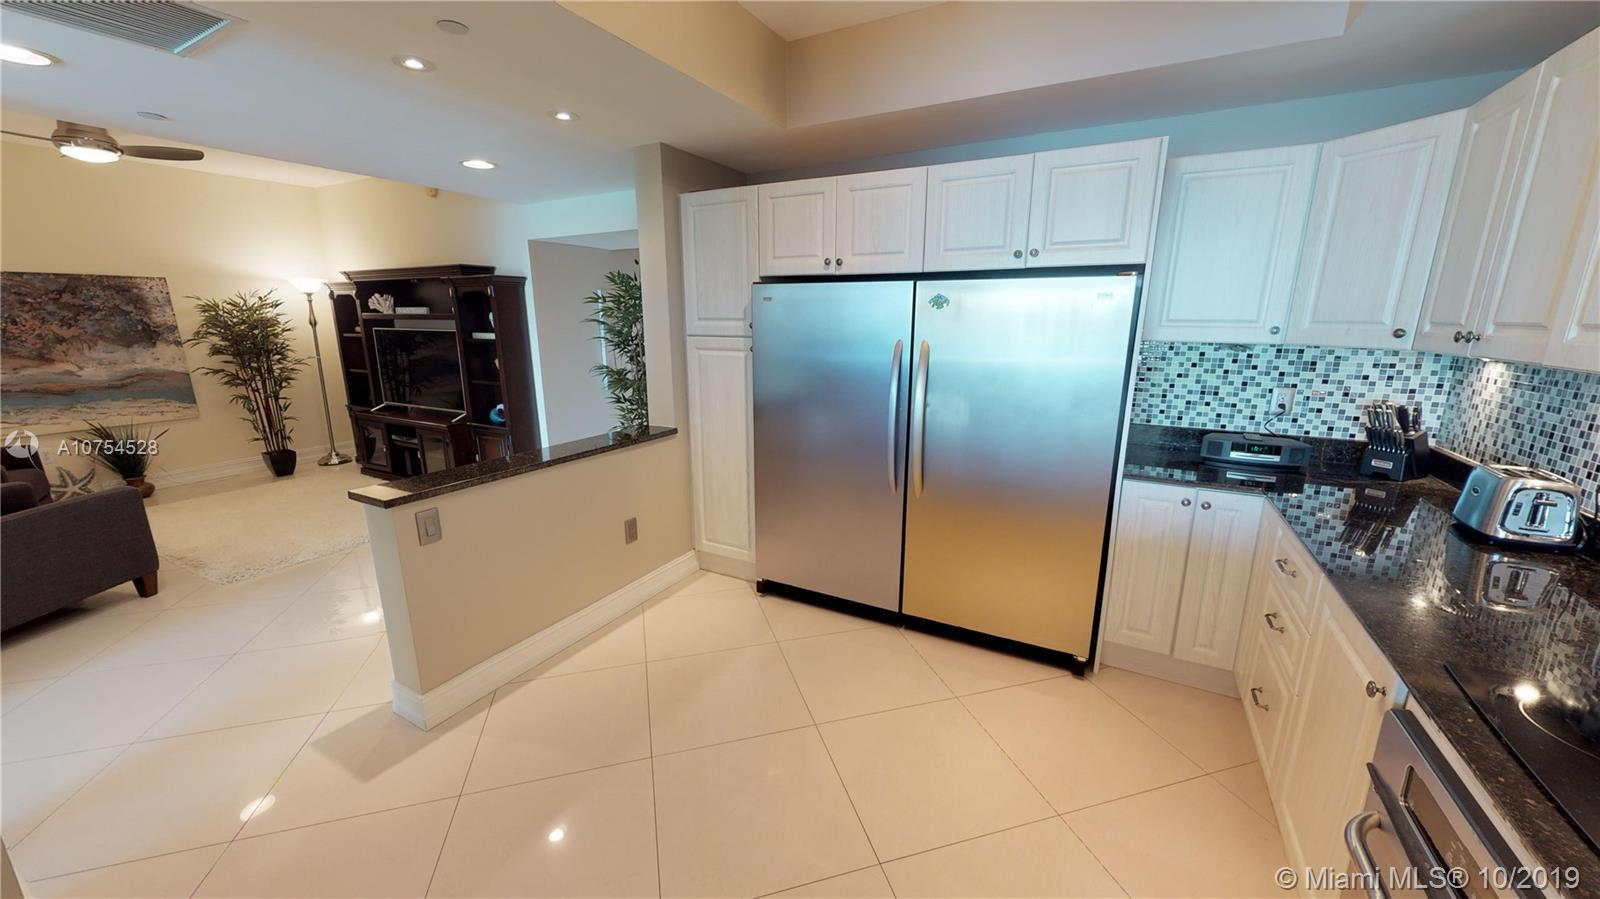 Beautiful remodeled condo is one of the best in Aventura Marina II.  The expanded gourmet kitchen ha